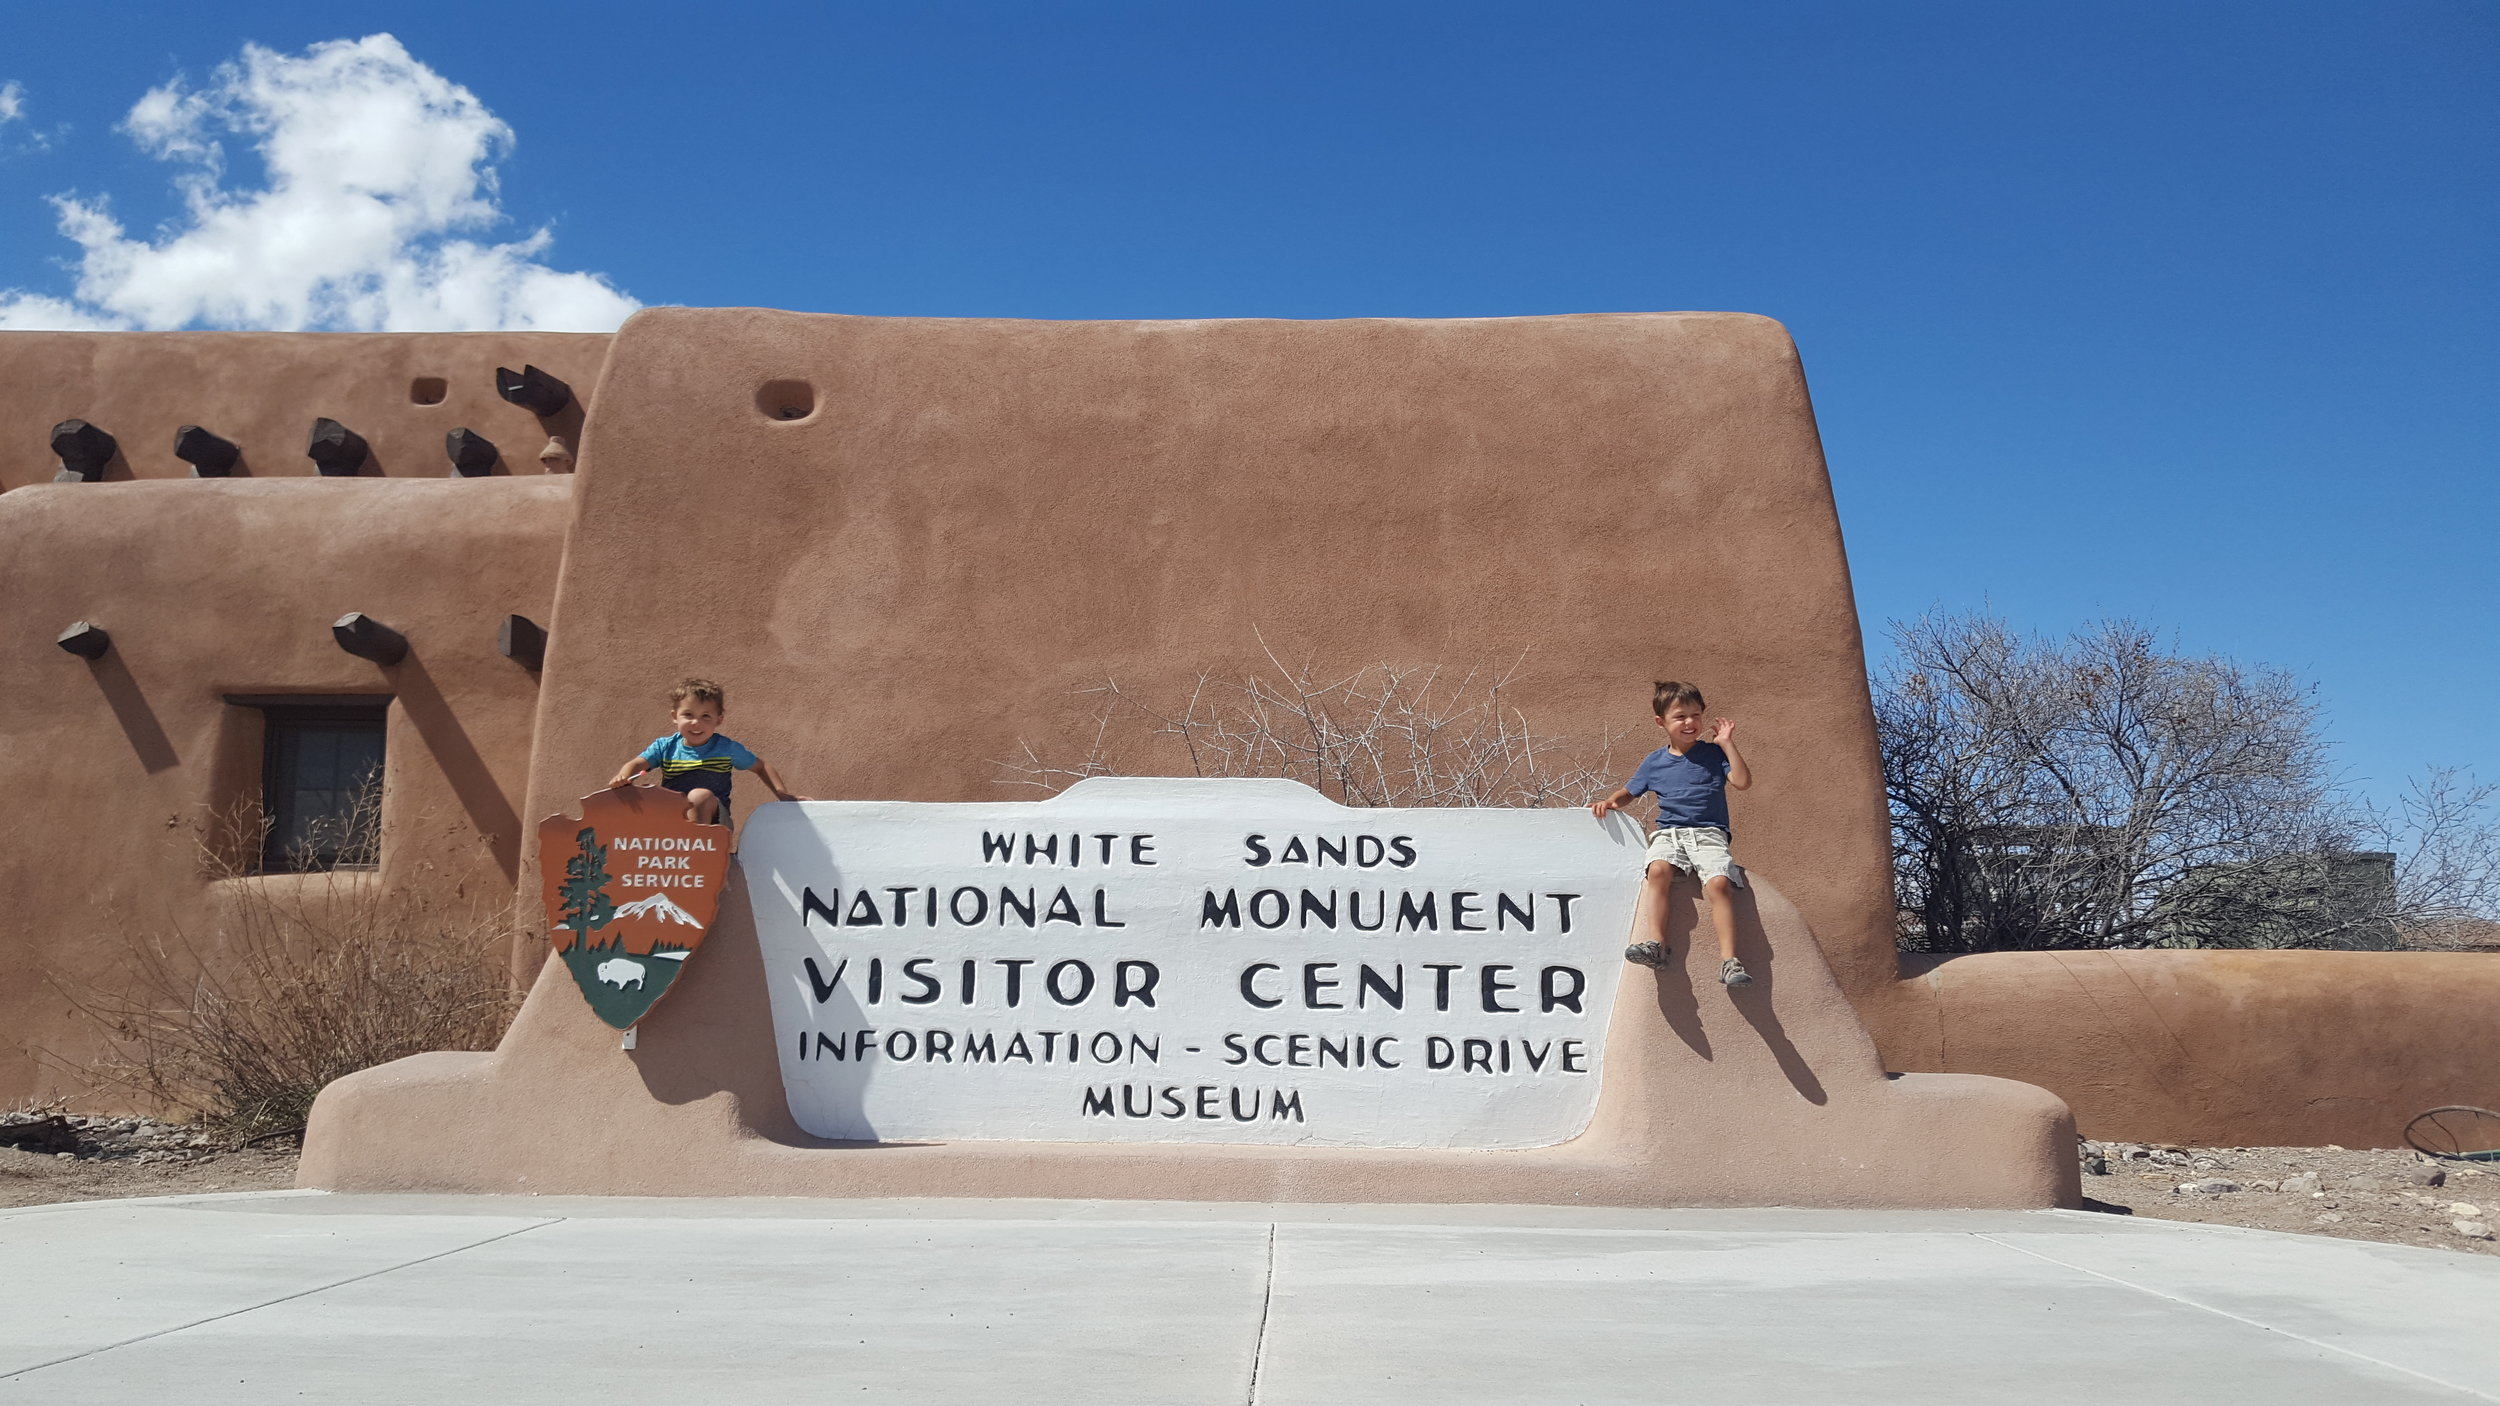 A quick stop at the Visitor Center to learn about White Sands.